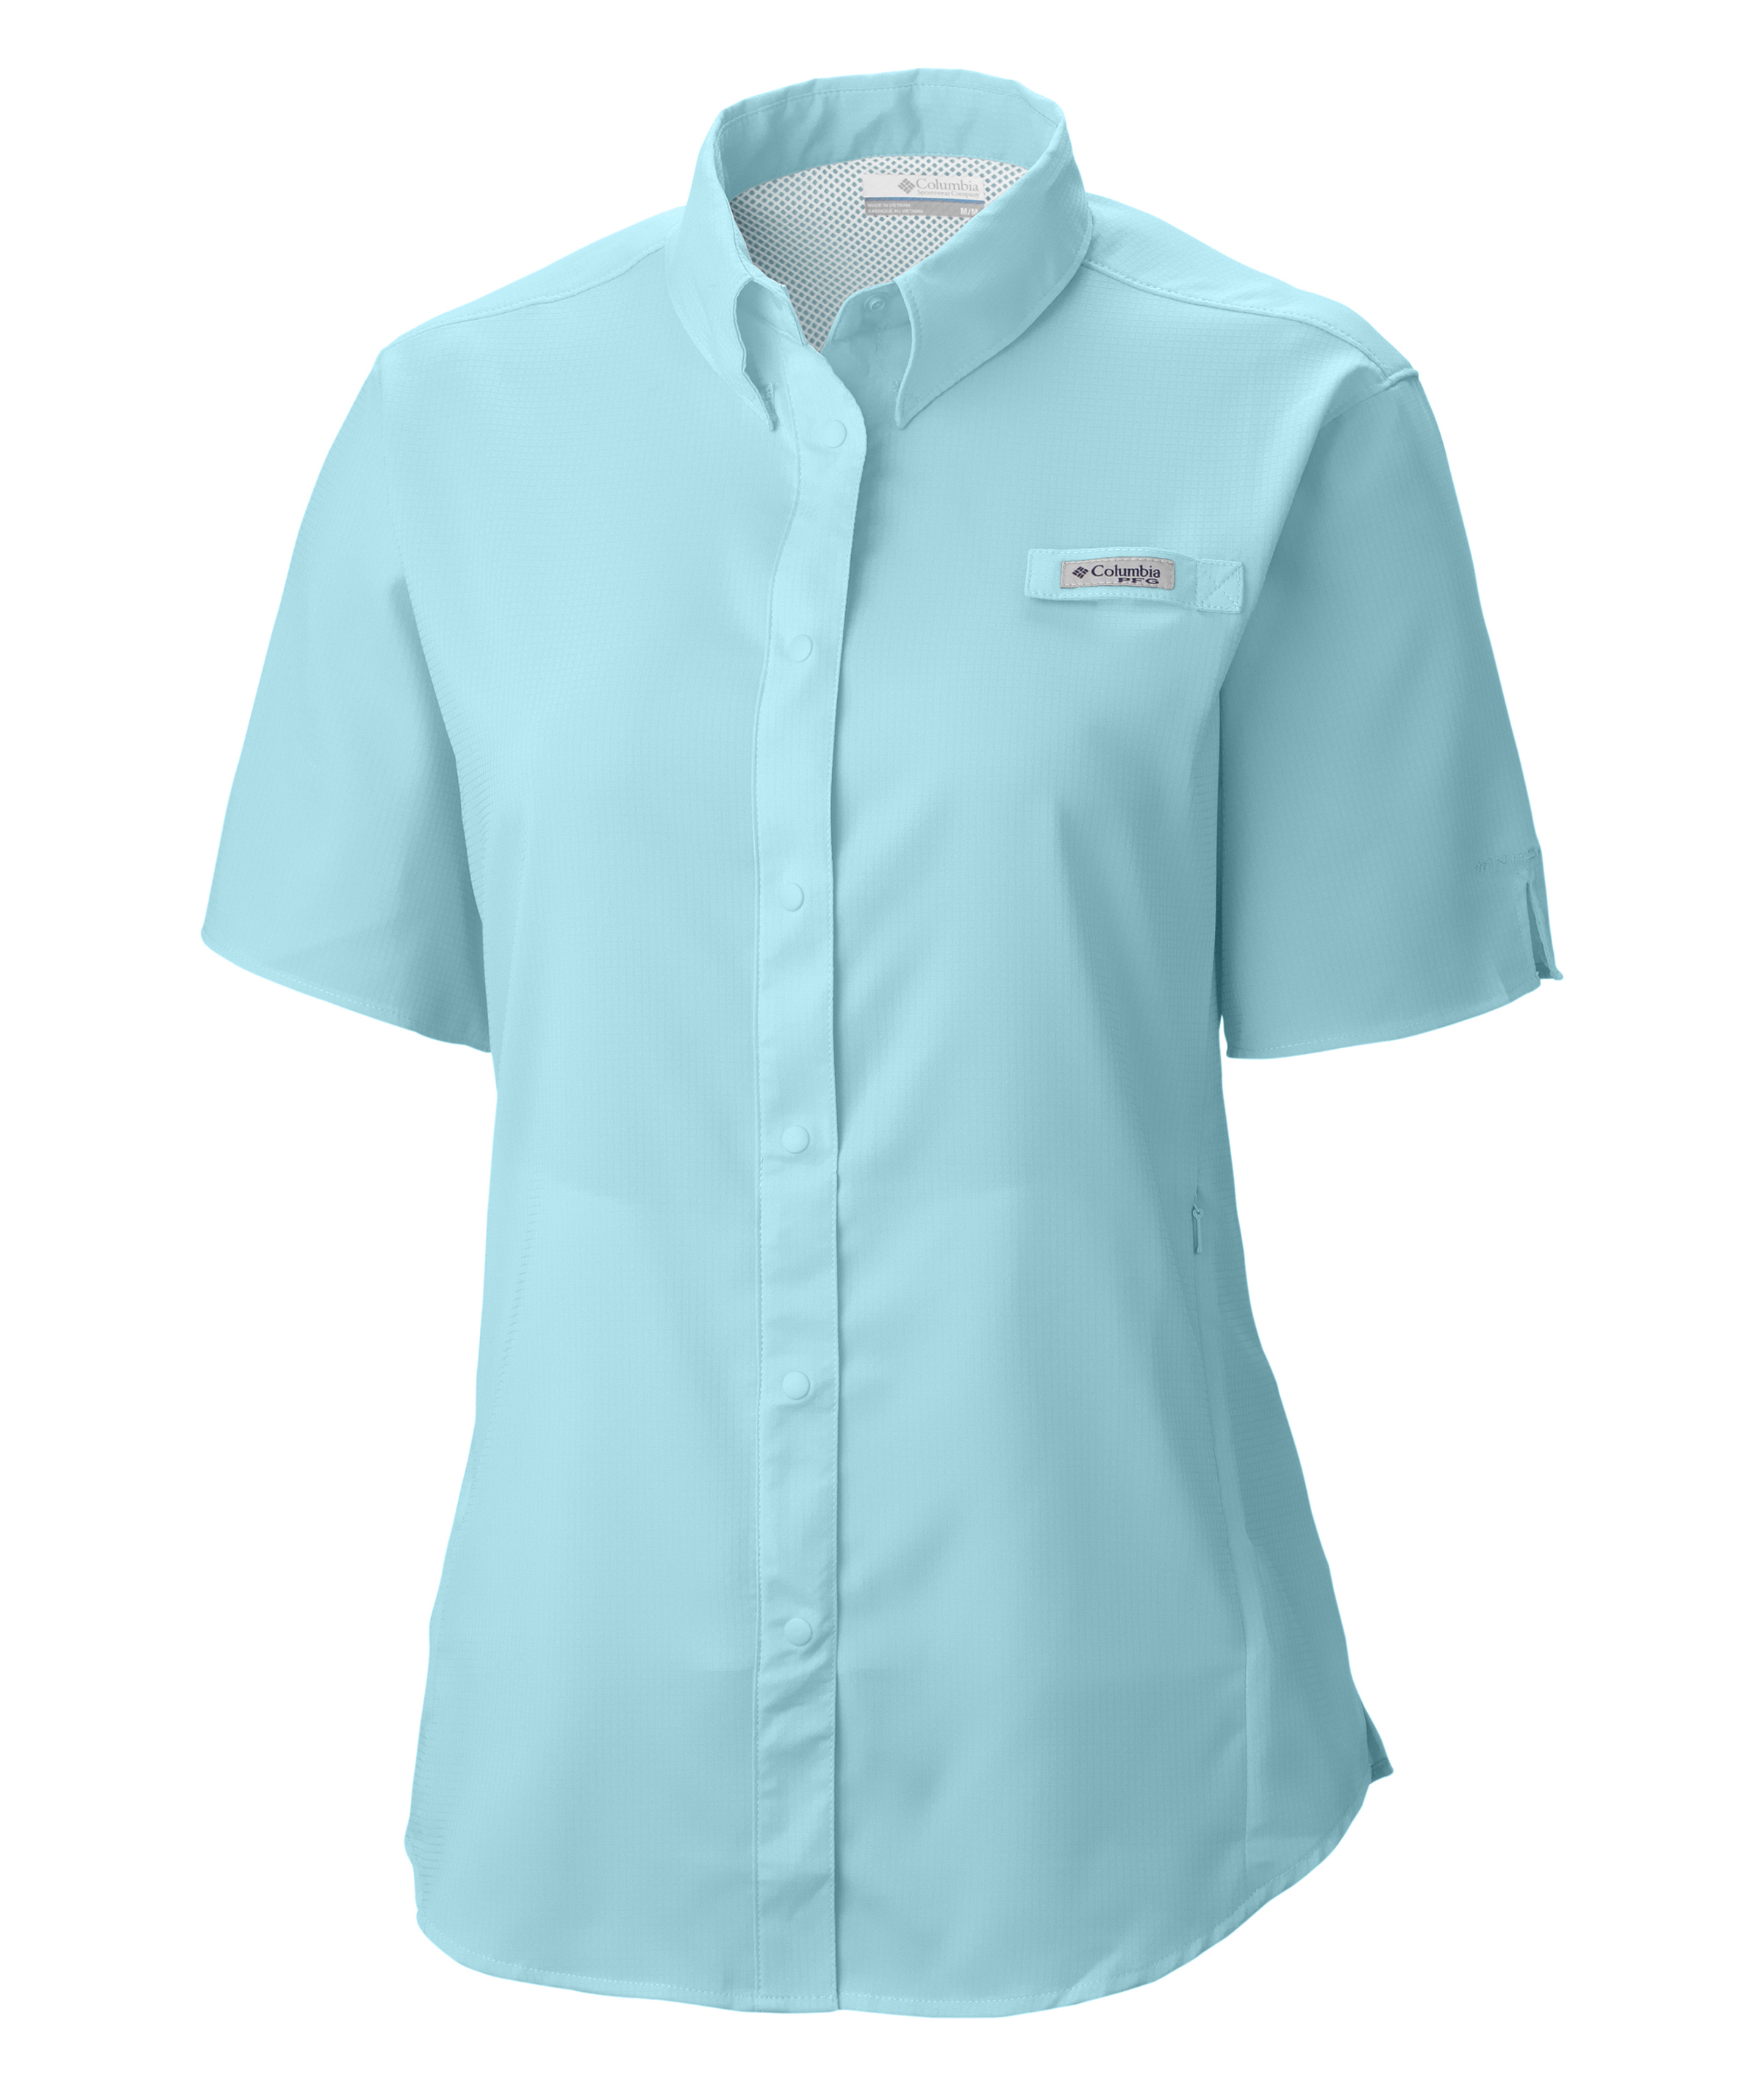 Columbia women 39 s tamiami ii short sleeve shirt 7277 for Columbia shirts womens pfg